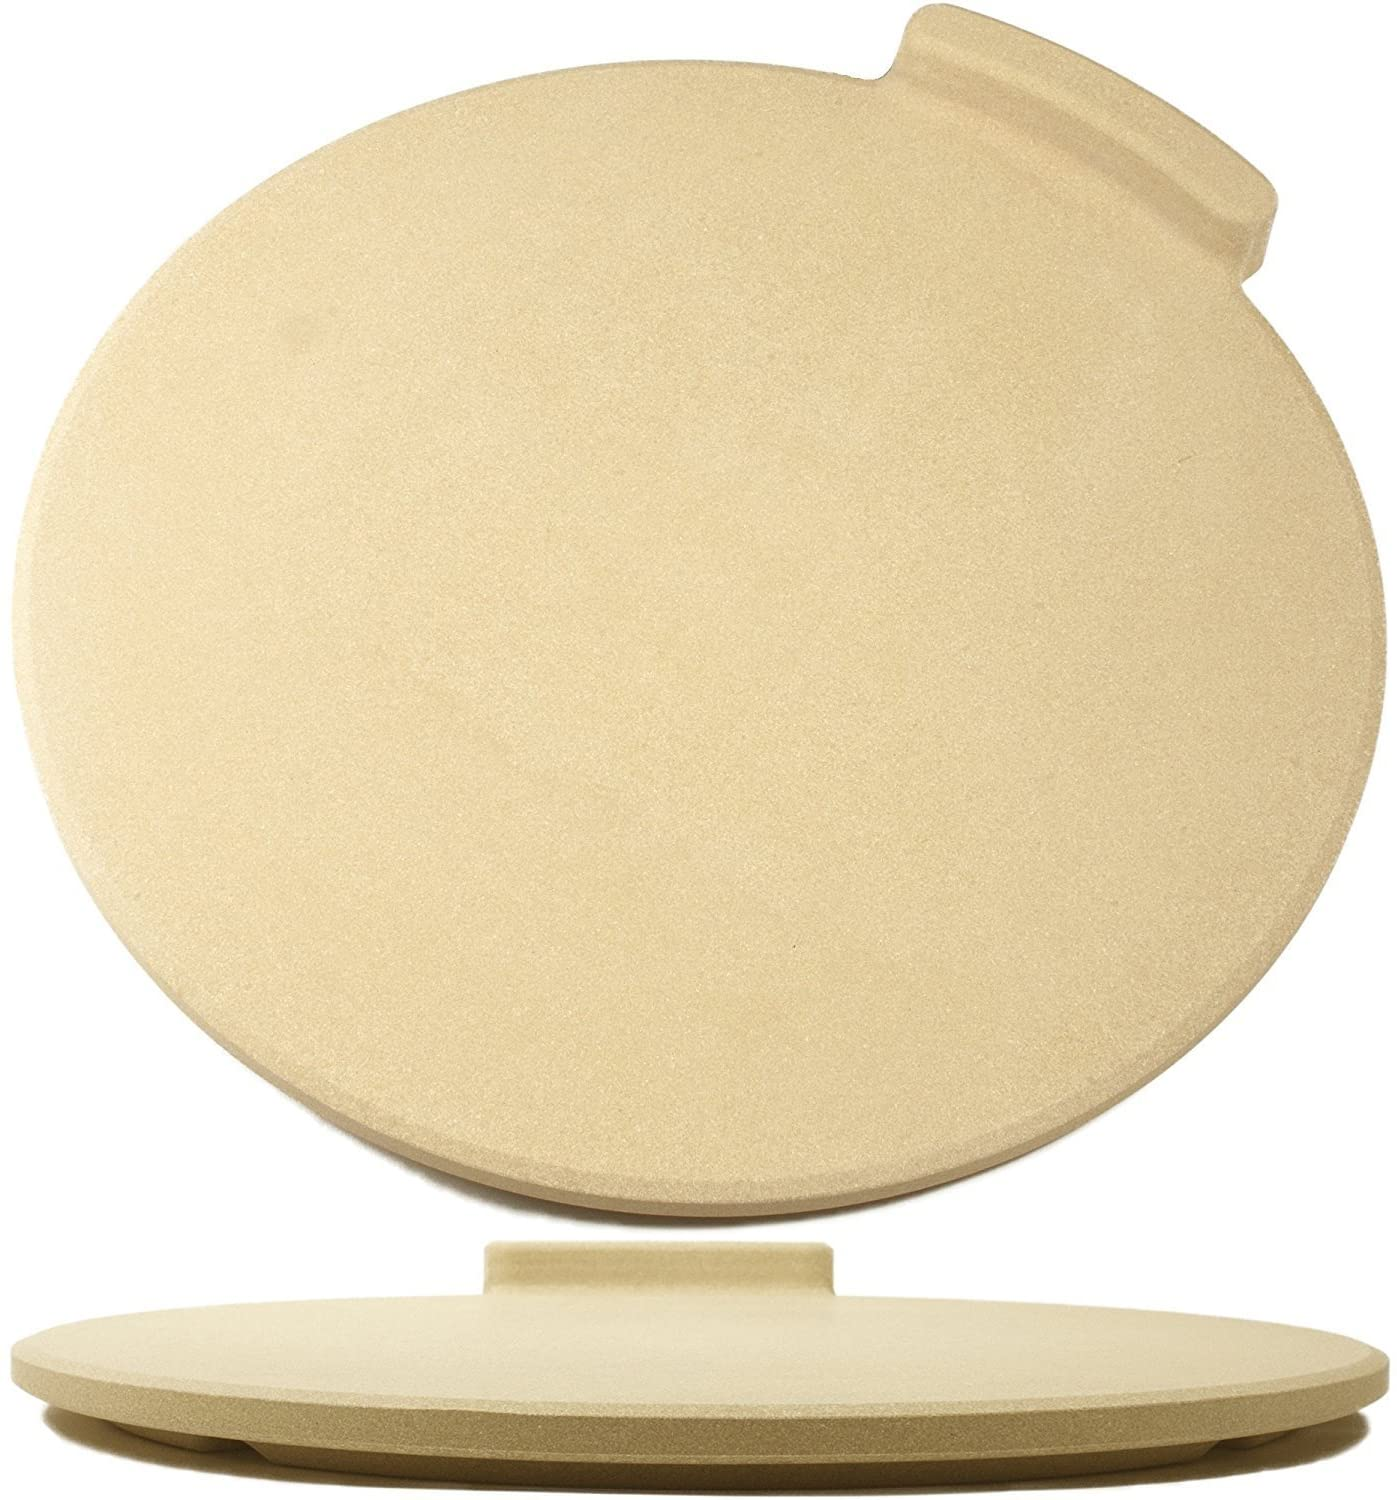 Love this kitchen the ultimate 16-inch round pizza stone